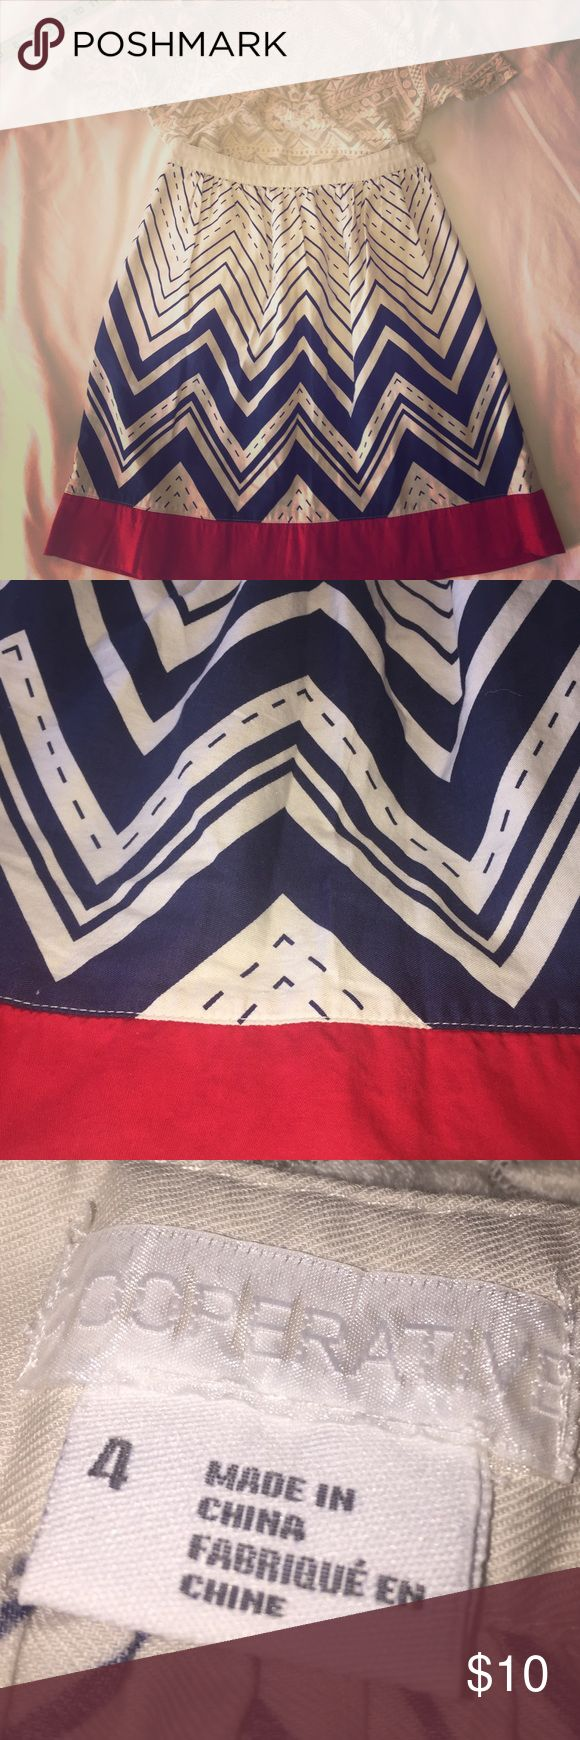 Urban Outfitters Nautical skirt U.O. Cooperative brand skirt beautifully constructed. Red blue and Ivory 100% cotton from urban outfitters.   The only flaw is the missing button Urban Outfitters Skirts A-Line or Full